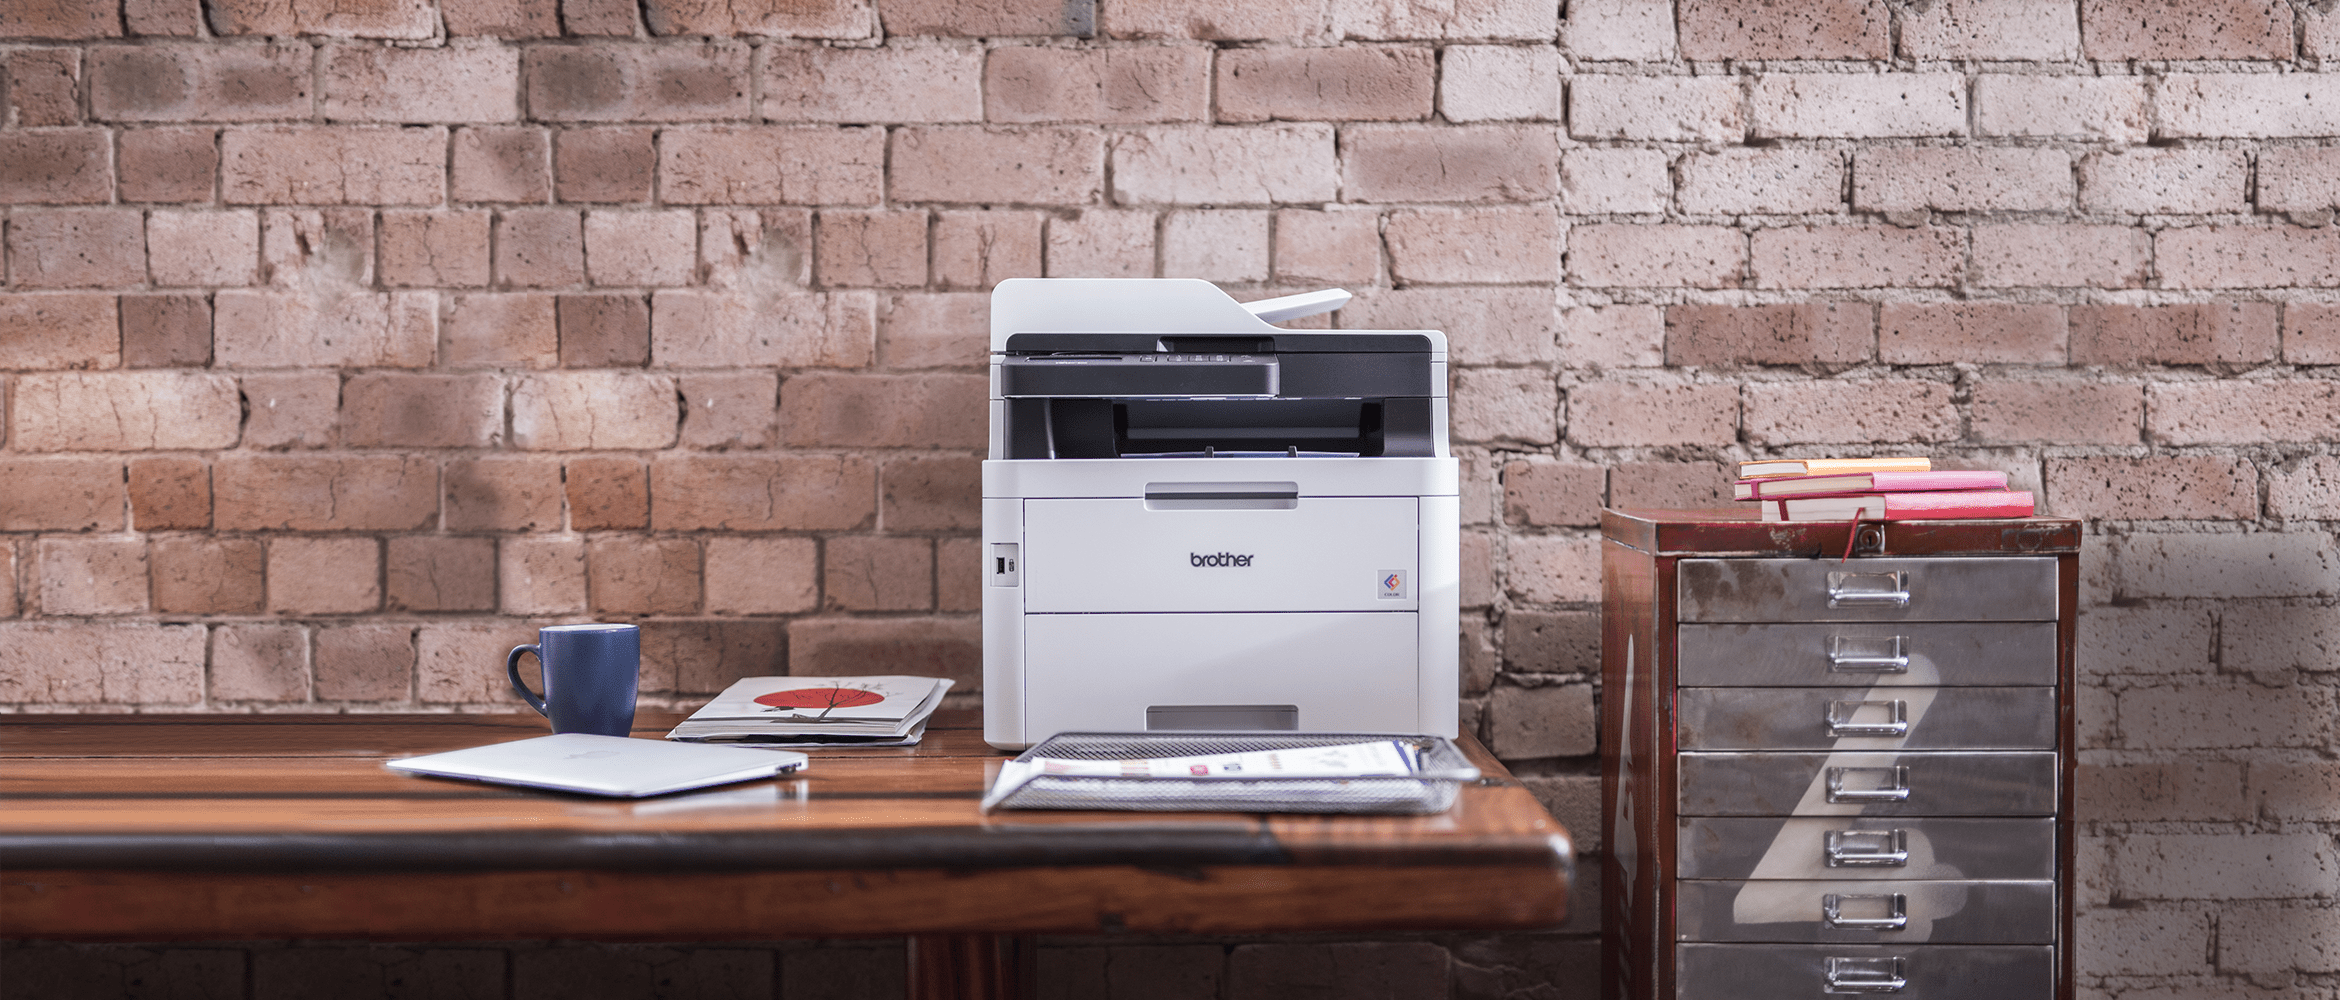 Brother DCP-L3550CDW colour laser printer on a desk